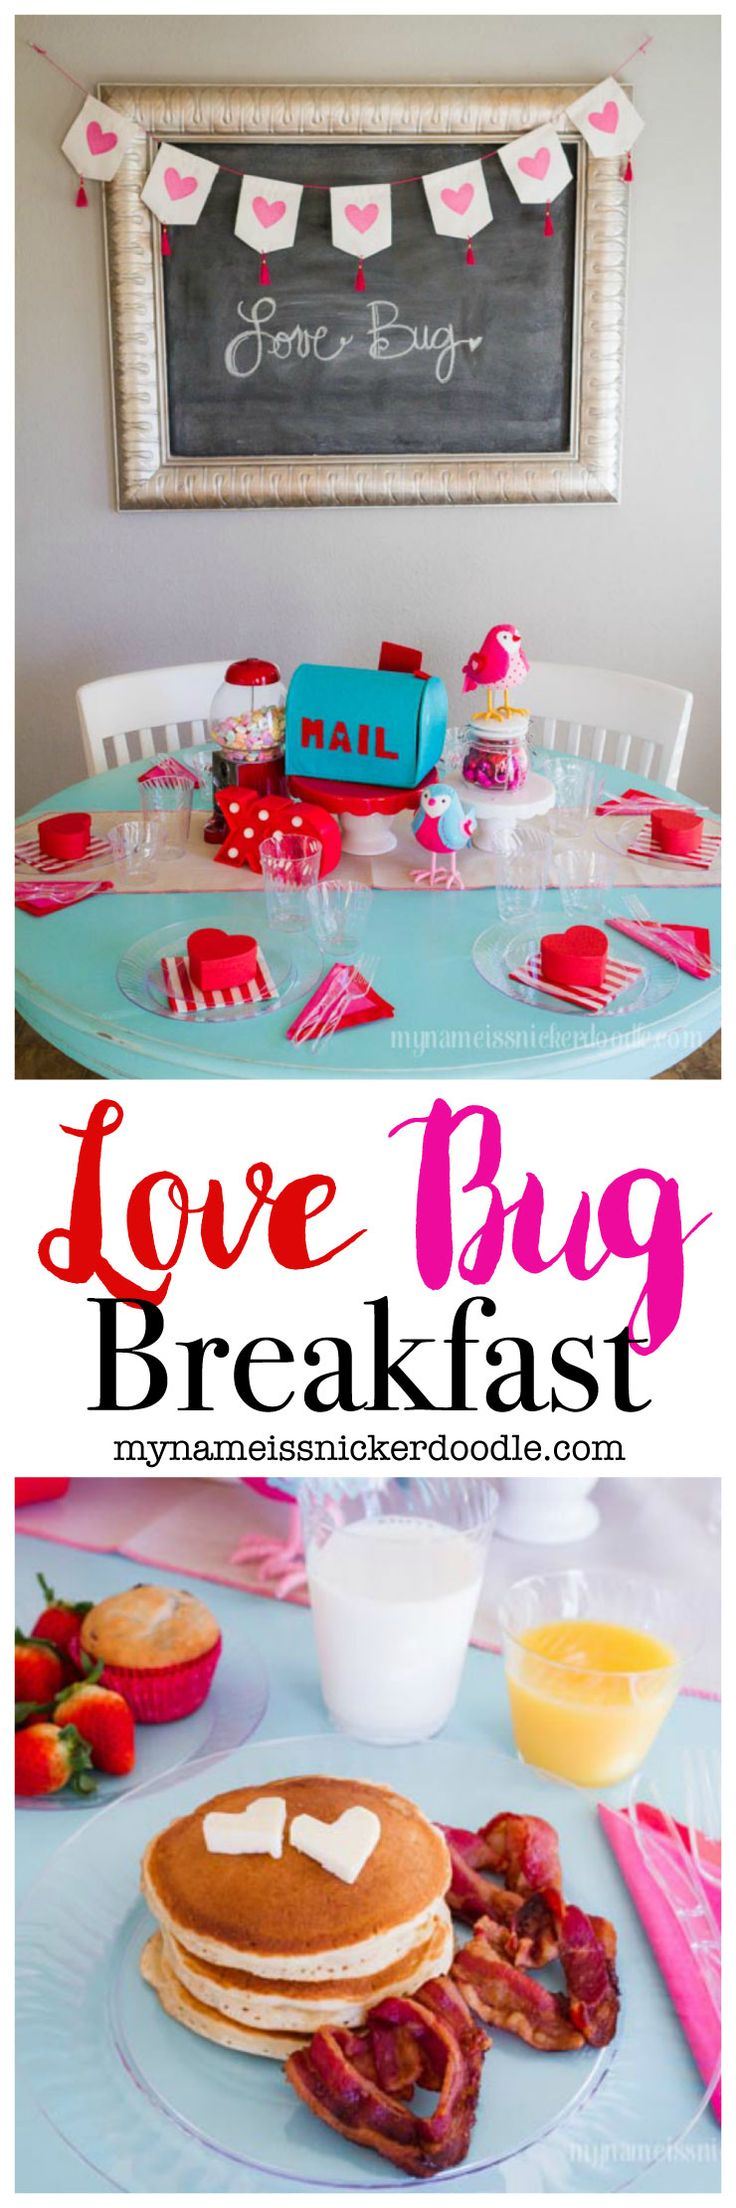 Celebrate Valentine's Day with this adorable Love Bug Breakfast for your family!  Such a fun tradition!  |  mynameissnickerdoodle.com